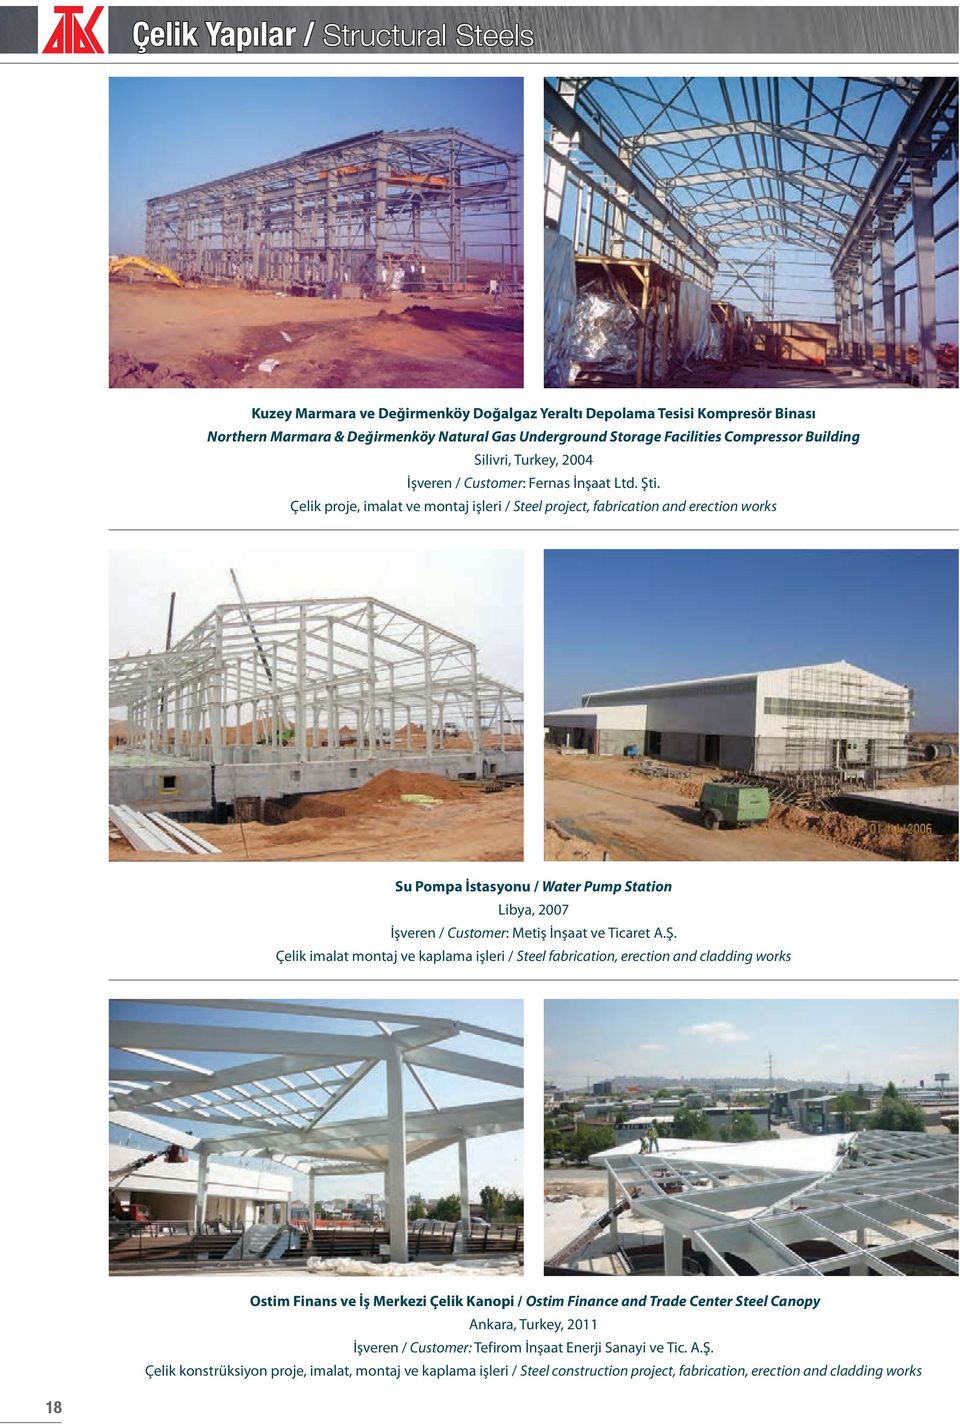 Çelik proje, imalat ve montaj işleri / Steel project, fabrication and erection works Su Pompa İstasyonu / Water Pump Station Libya, 2007 İşveren / Customer: Metiş İnşaat ve Ticaret A.Ş.